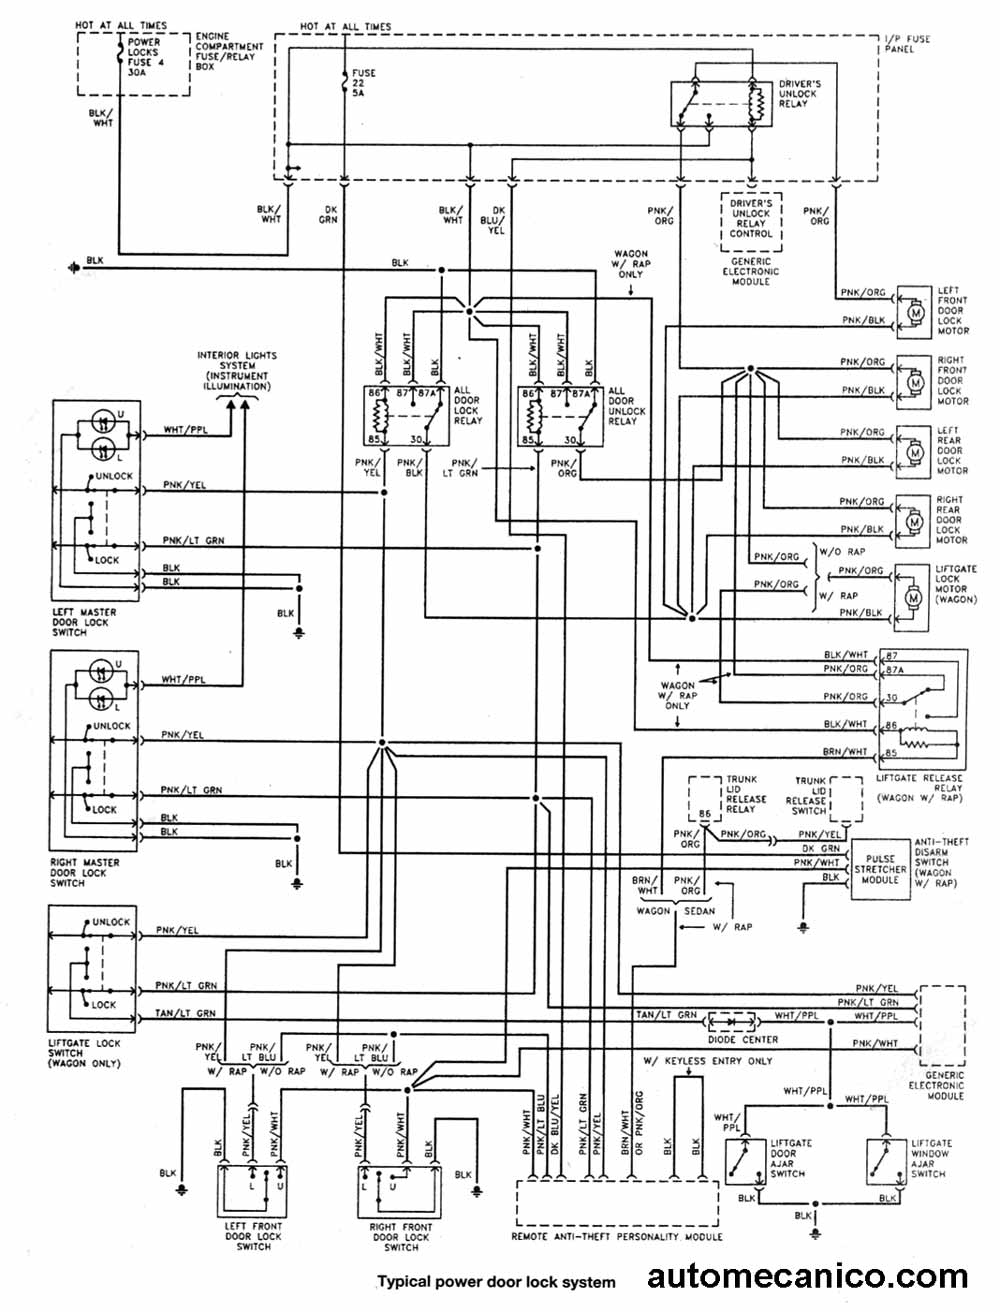 Famous Stratus 99 Automatico furthermore P0015 besides 4up94 Fuel Pump Fuse Relay 2000 Ford Explorer besides Discussion T12083 ds543323 moreover RepairGuideContent. on 99 ford taurus radio wiring diagram